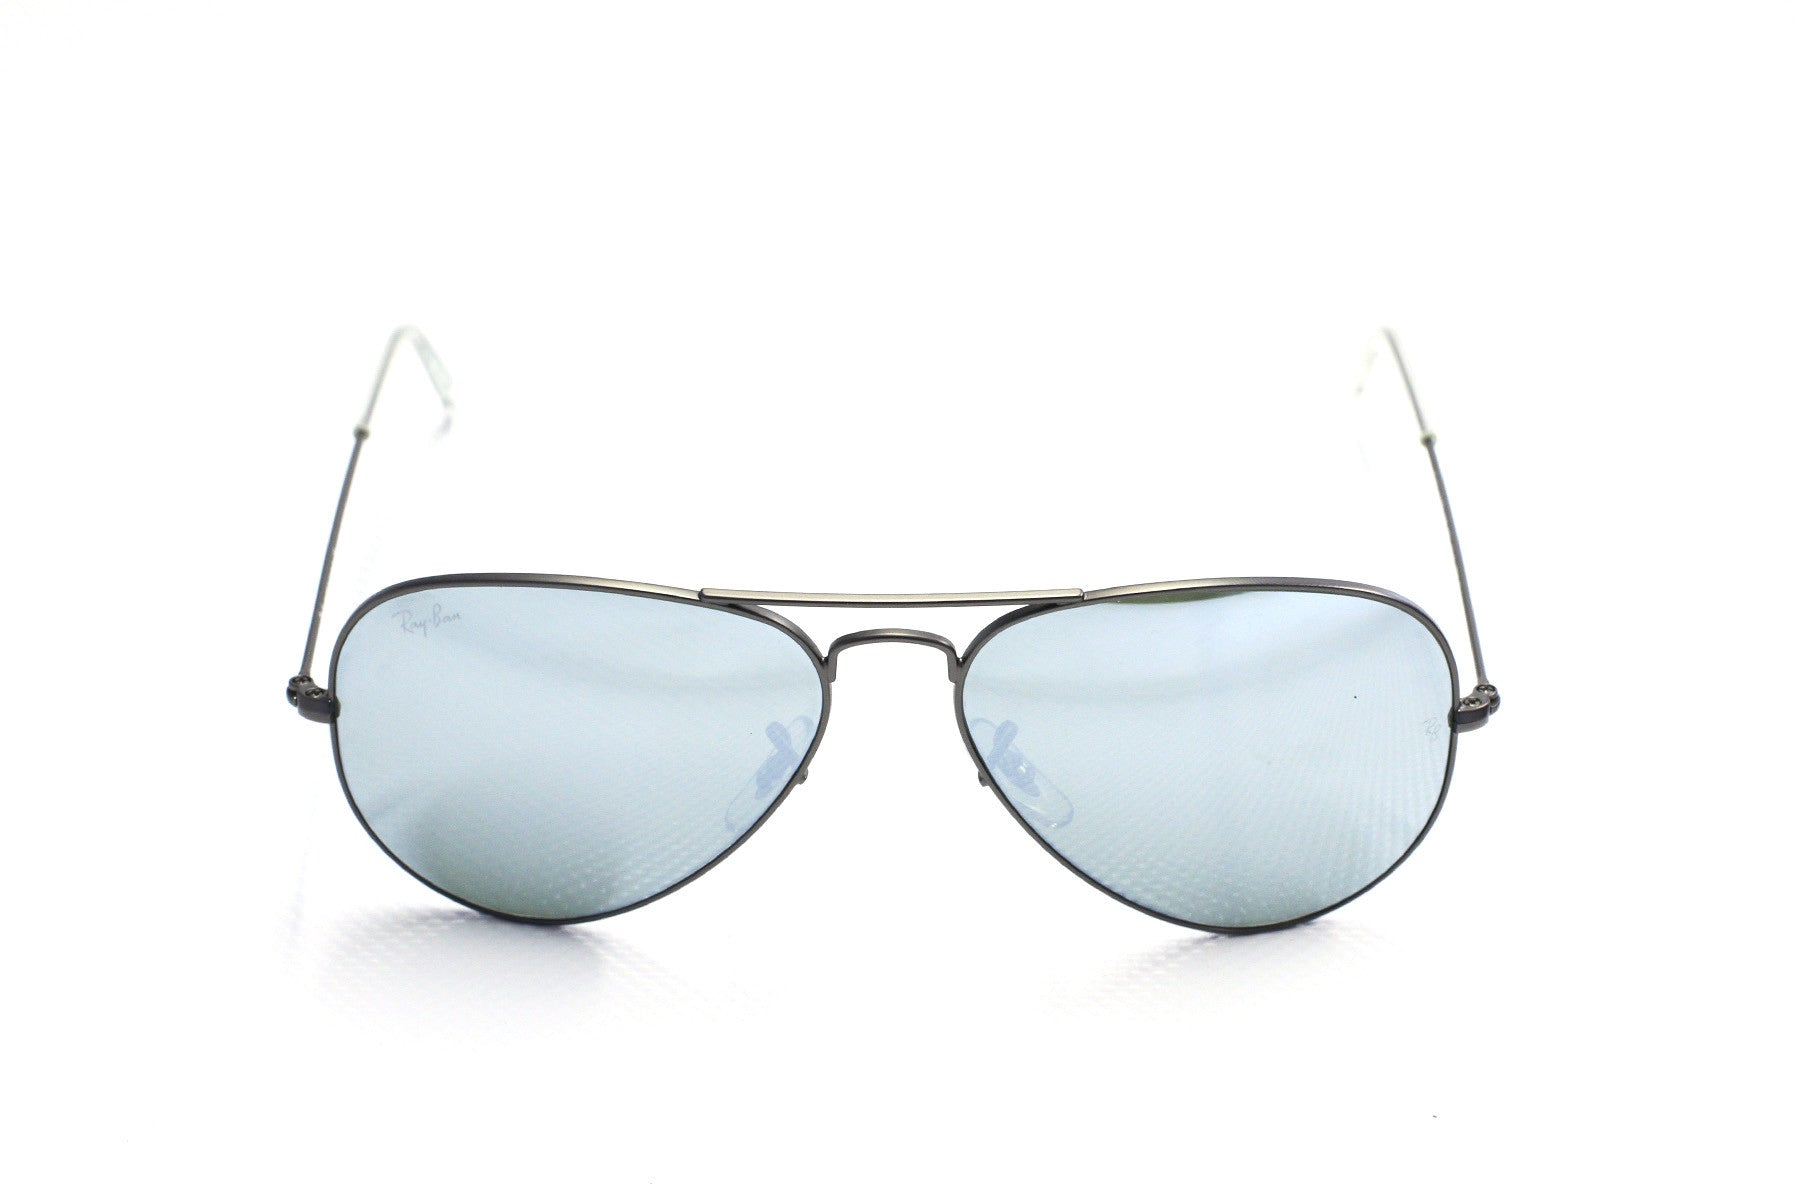 Ray-Ban RB3025 Aviator 029-30 Gunmetal Sunglasses at Enderbys UK